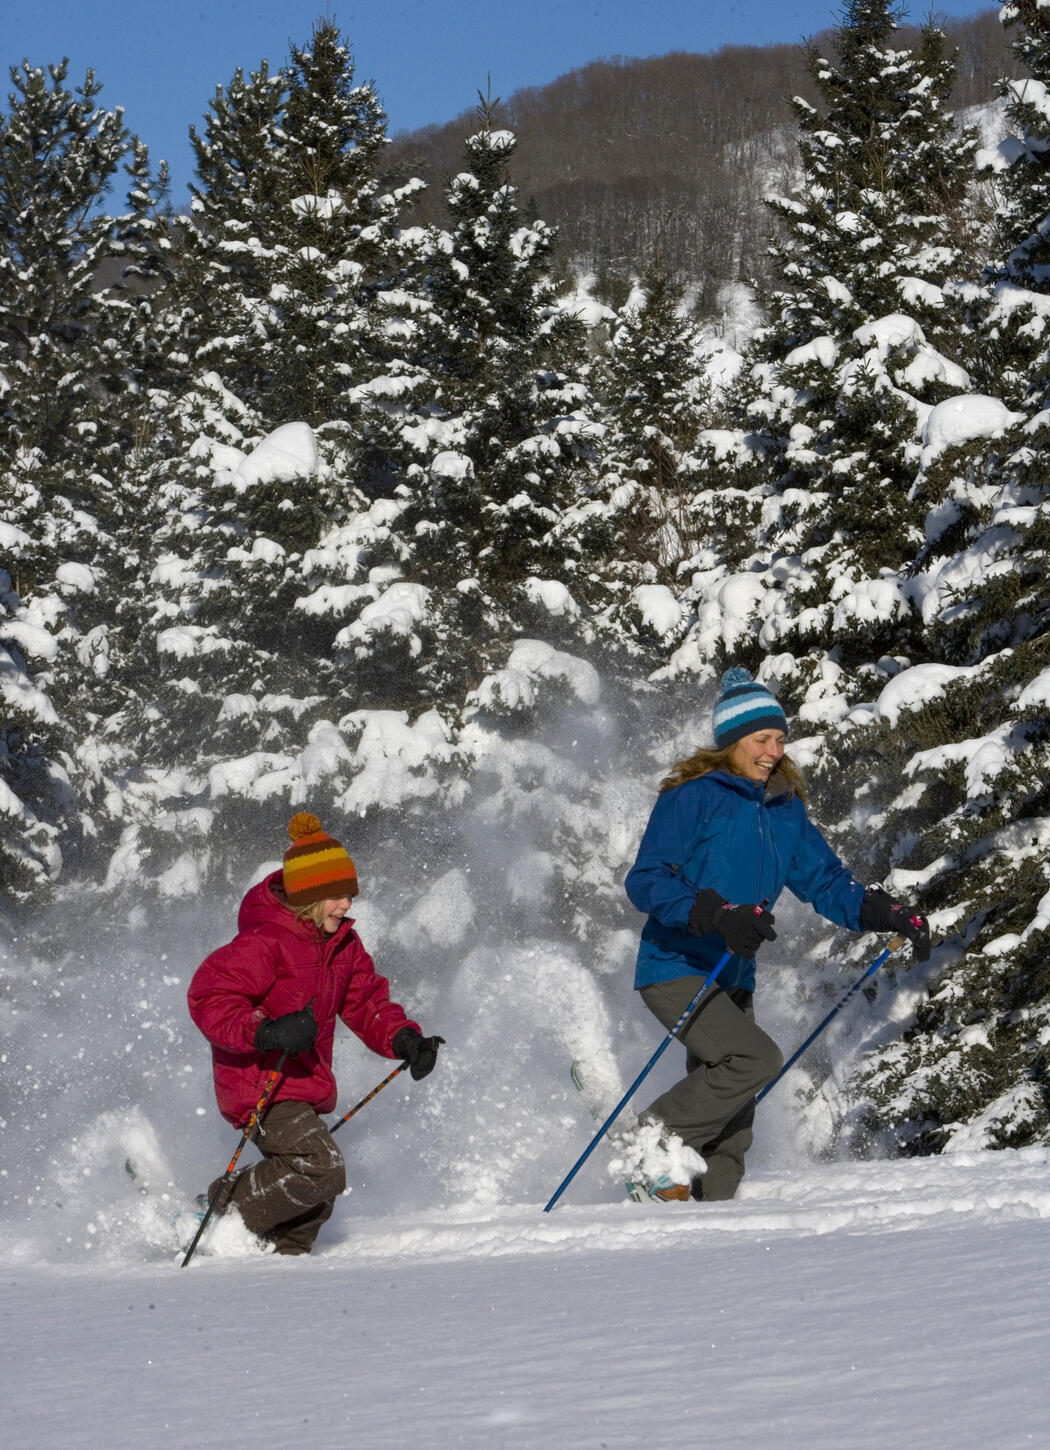 Woman and girl running on snowshoes in deep powder snow